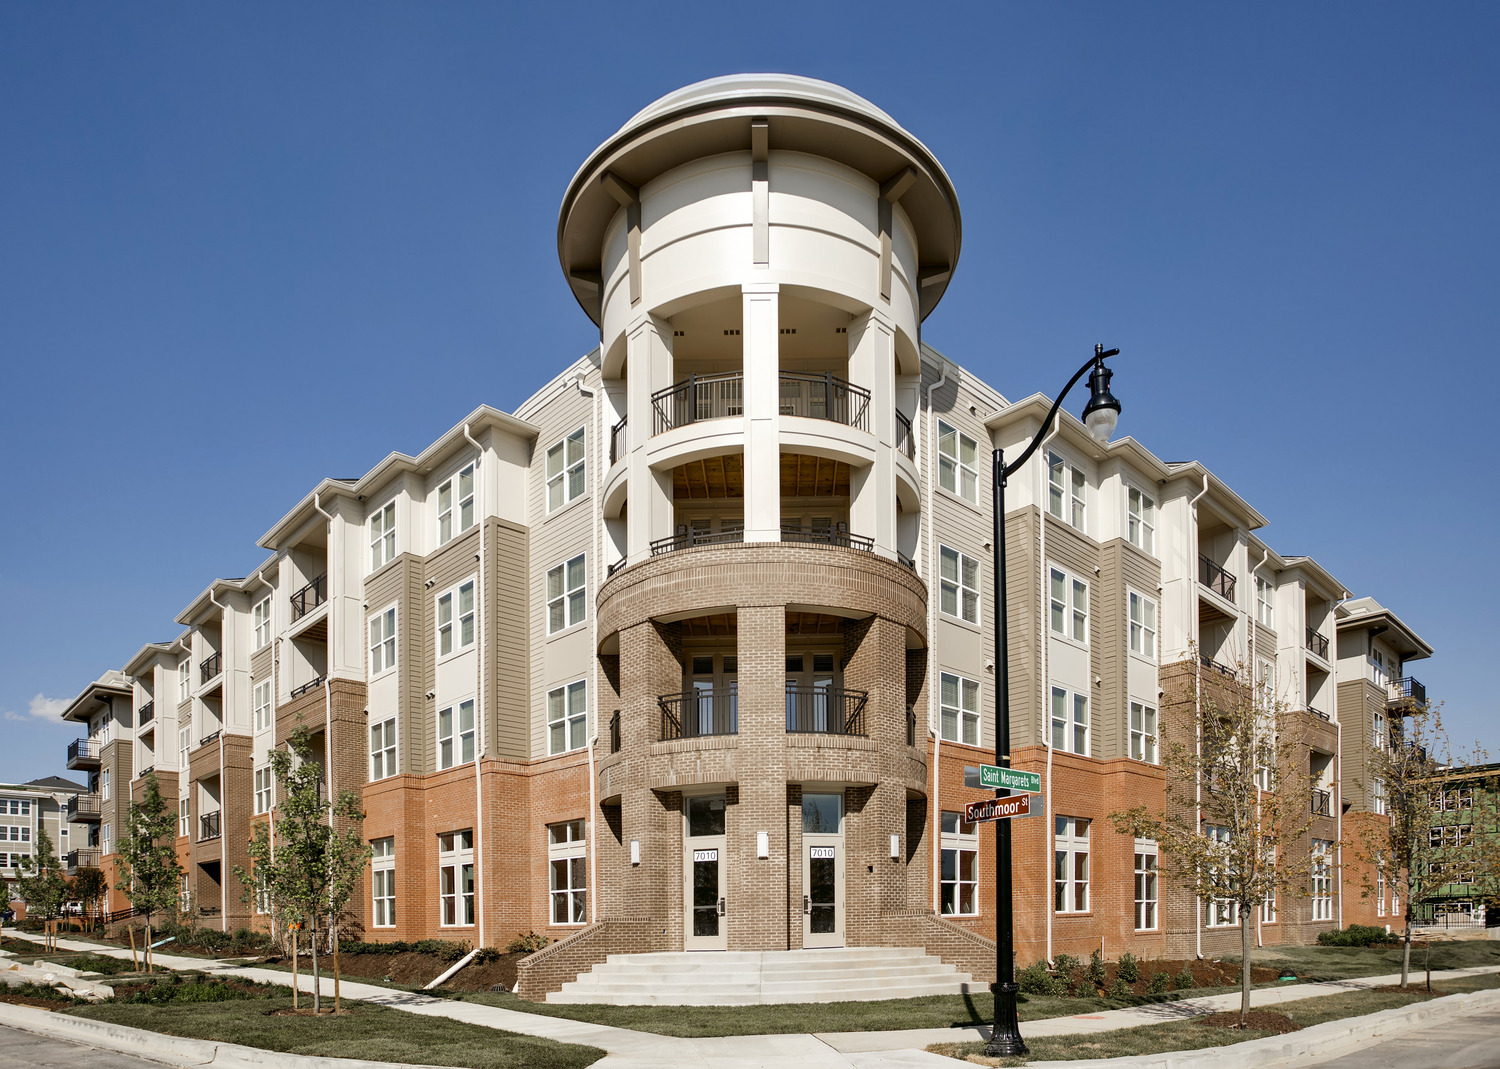 CBG builds Azure Oxford Square, a 248-Unit Residential Community with Amenities in Hanover, MD - Image #1